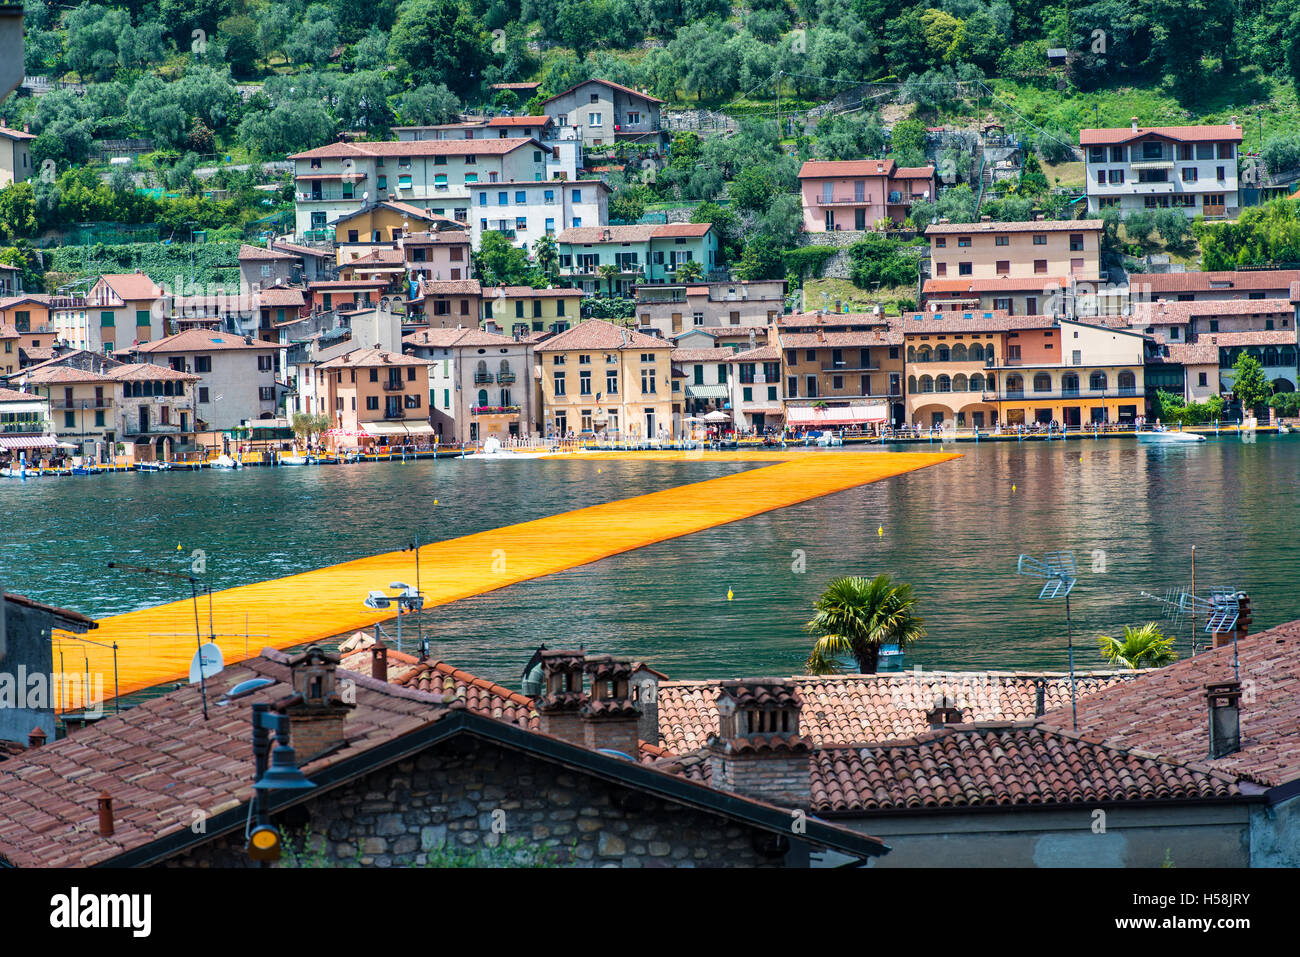 Peschiera Maraglio, Italy - June 17, 2016: The floating piers. The artist Christo walkway on Lake Iseo. The day - Stock Image